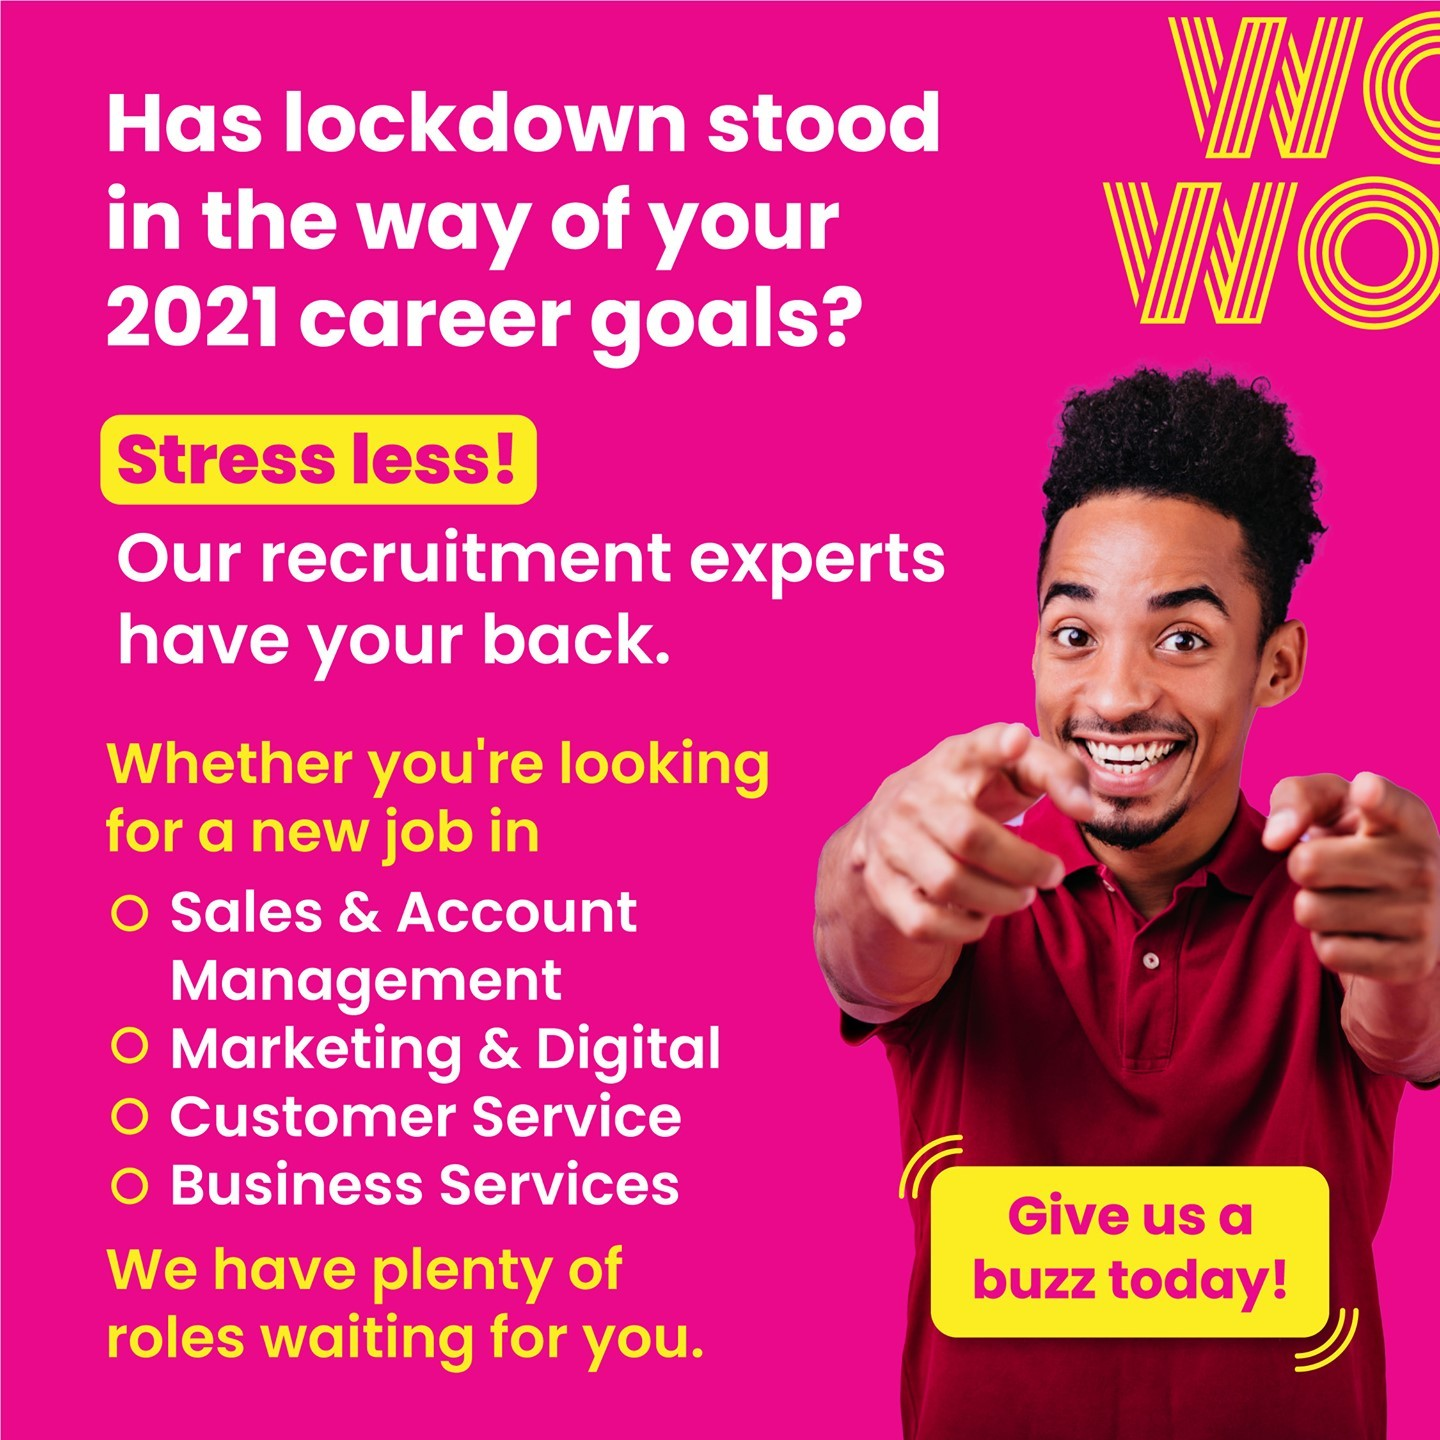 It isn't stopping us from recruiting, so why should it stop you from growing? Get in touch with the team today. Link in bio #WorkHappy #Wecruitment #DoWhatYouLove #AustraliaJobs